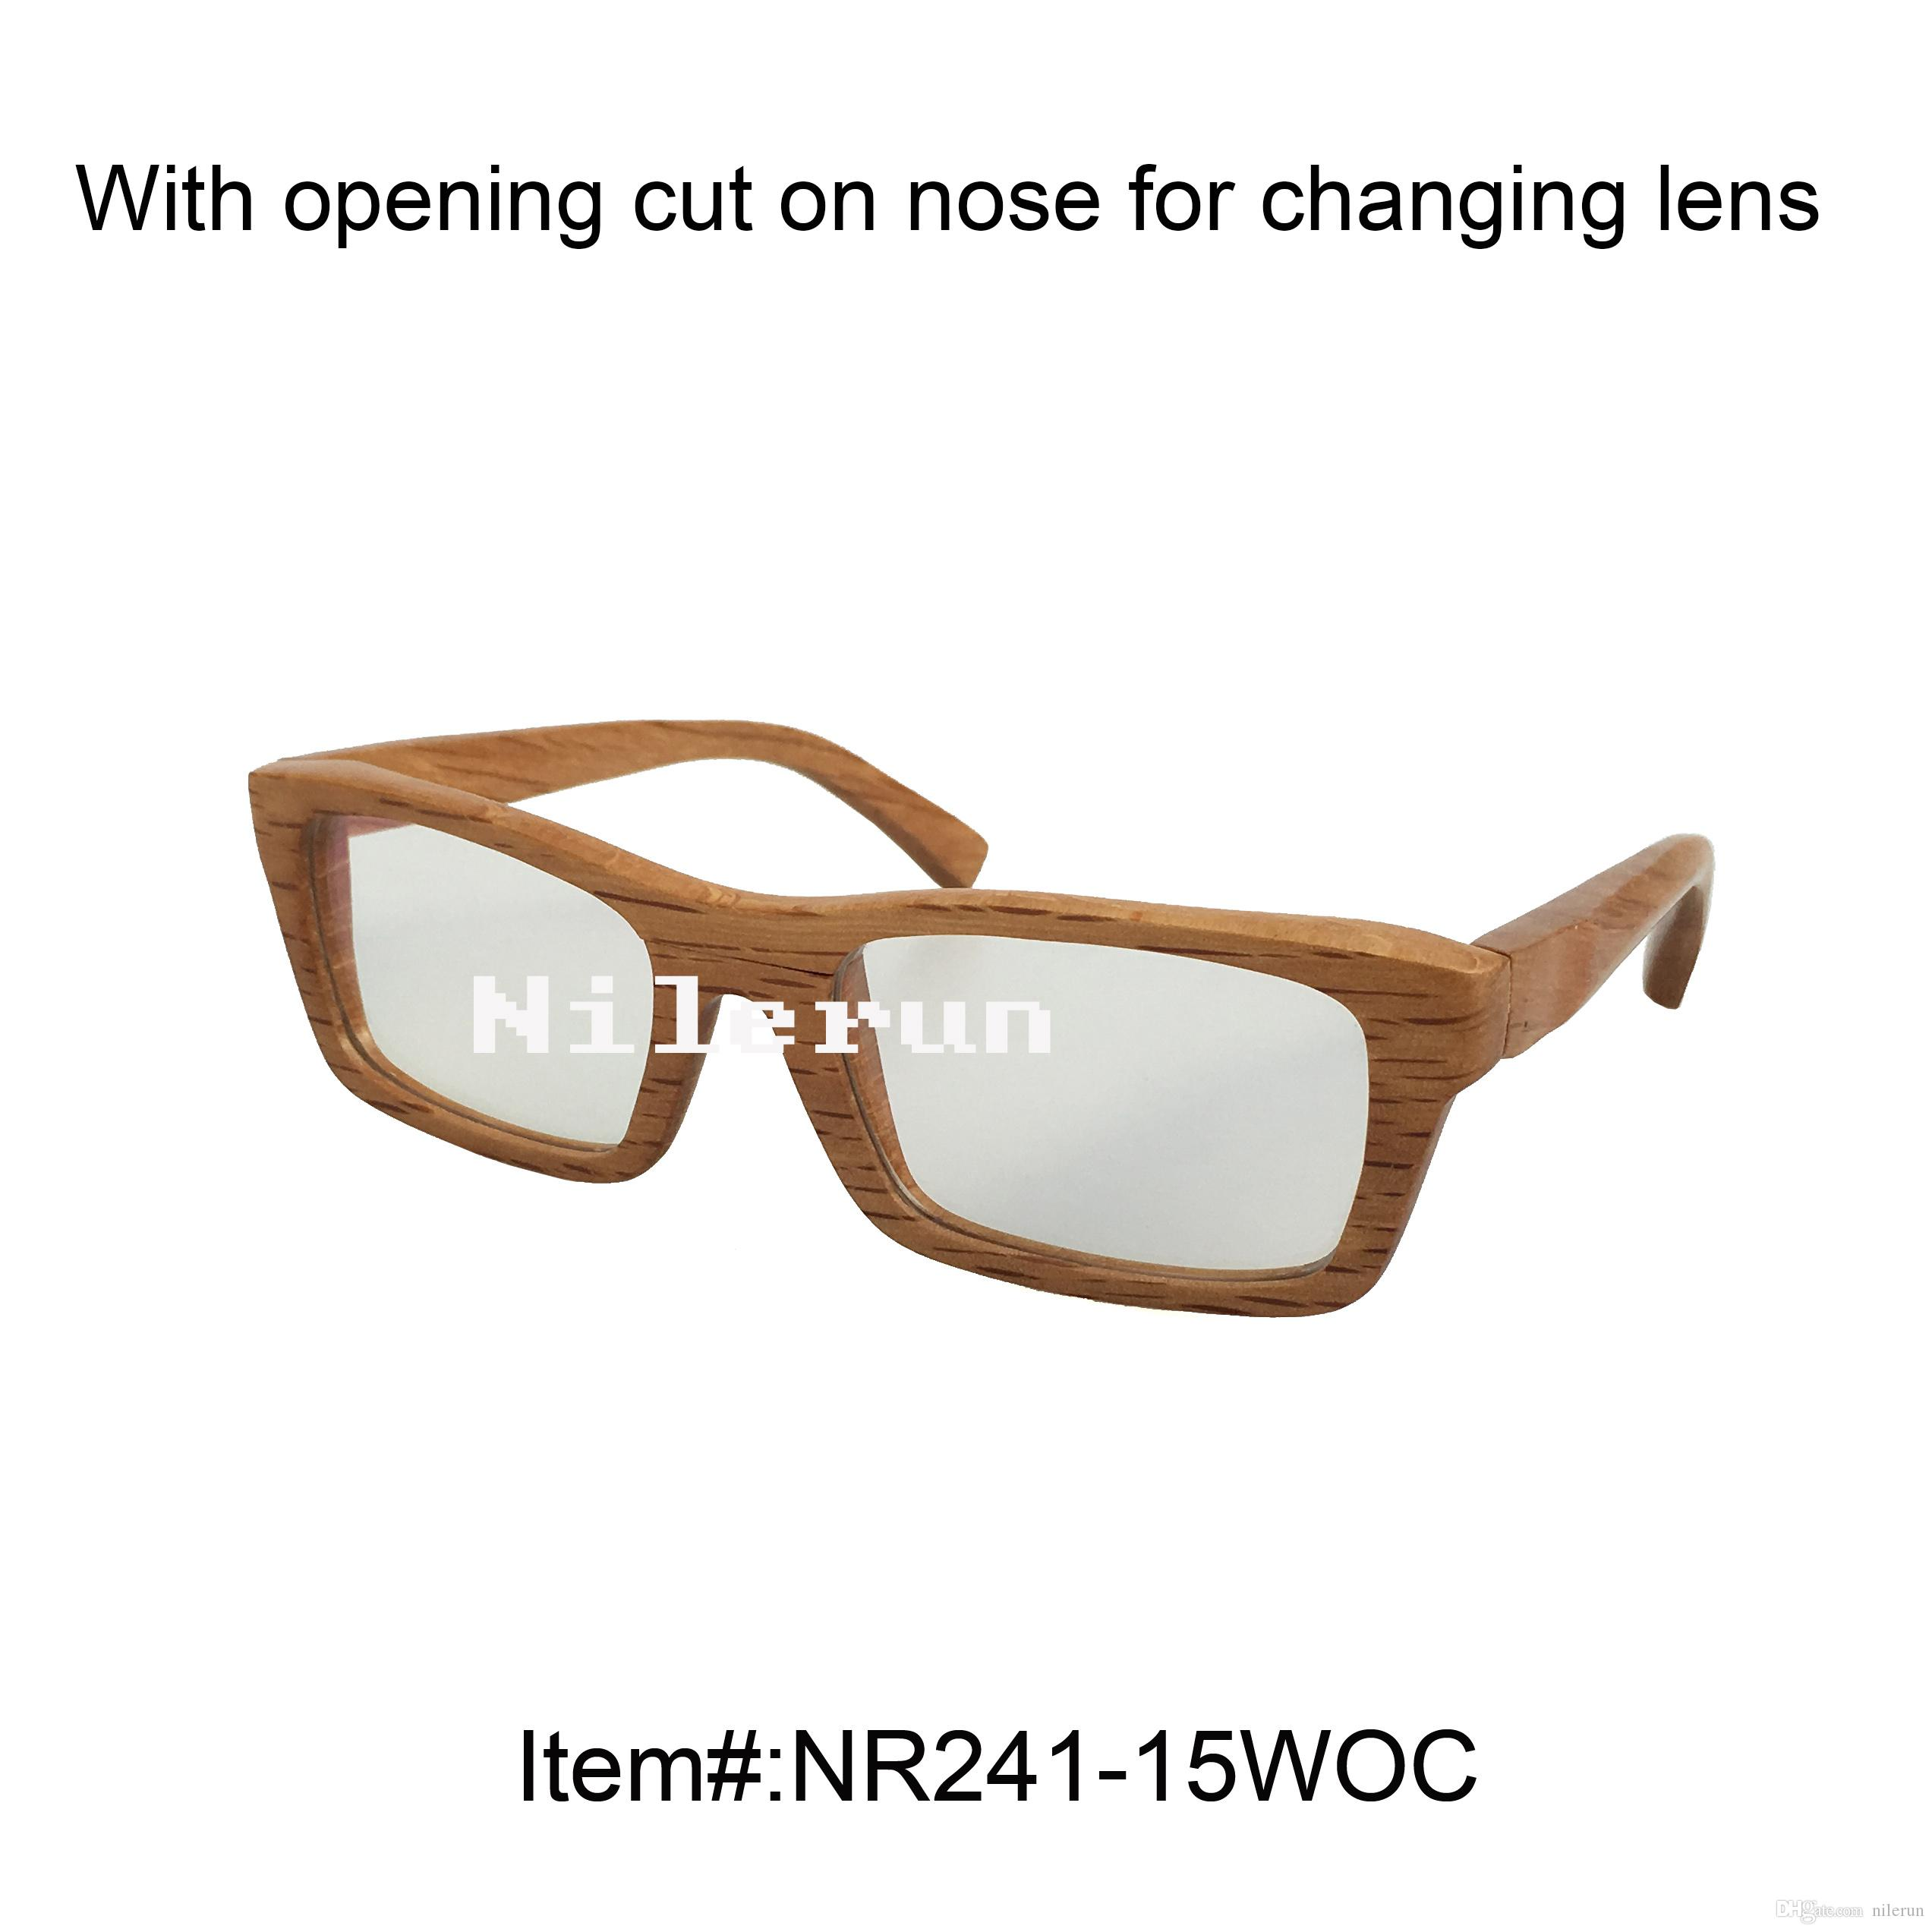 Rectangle Solid Wood Optical Glasses With Opening Cut For Changing ...